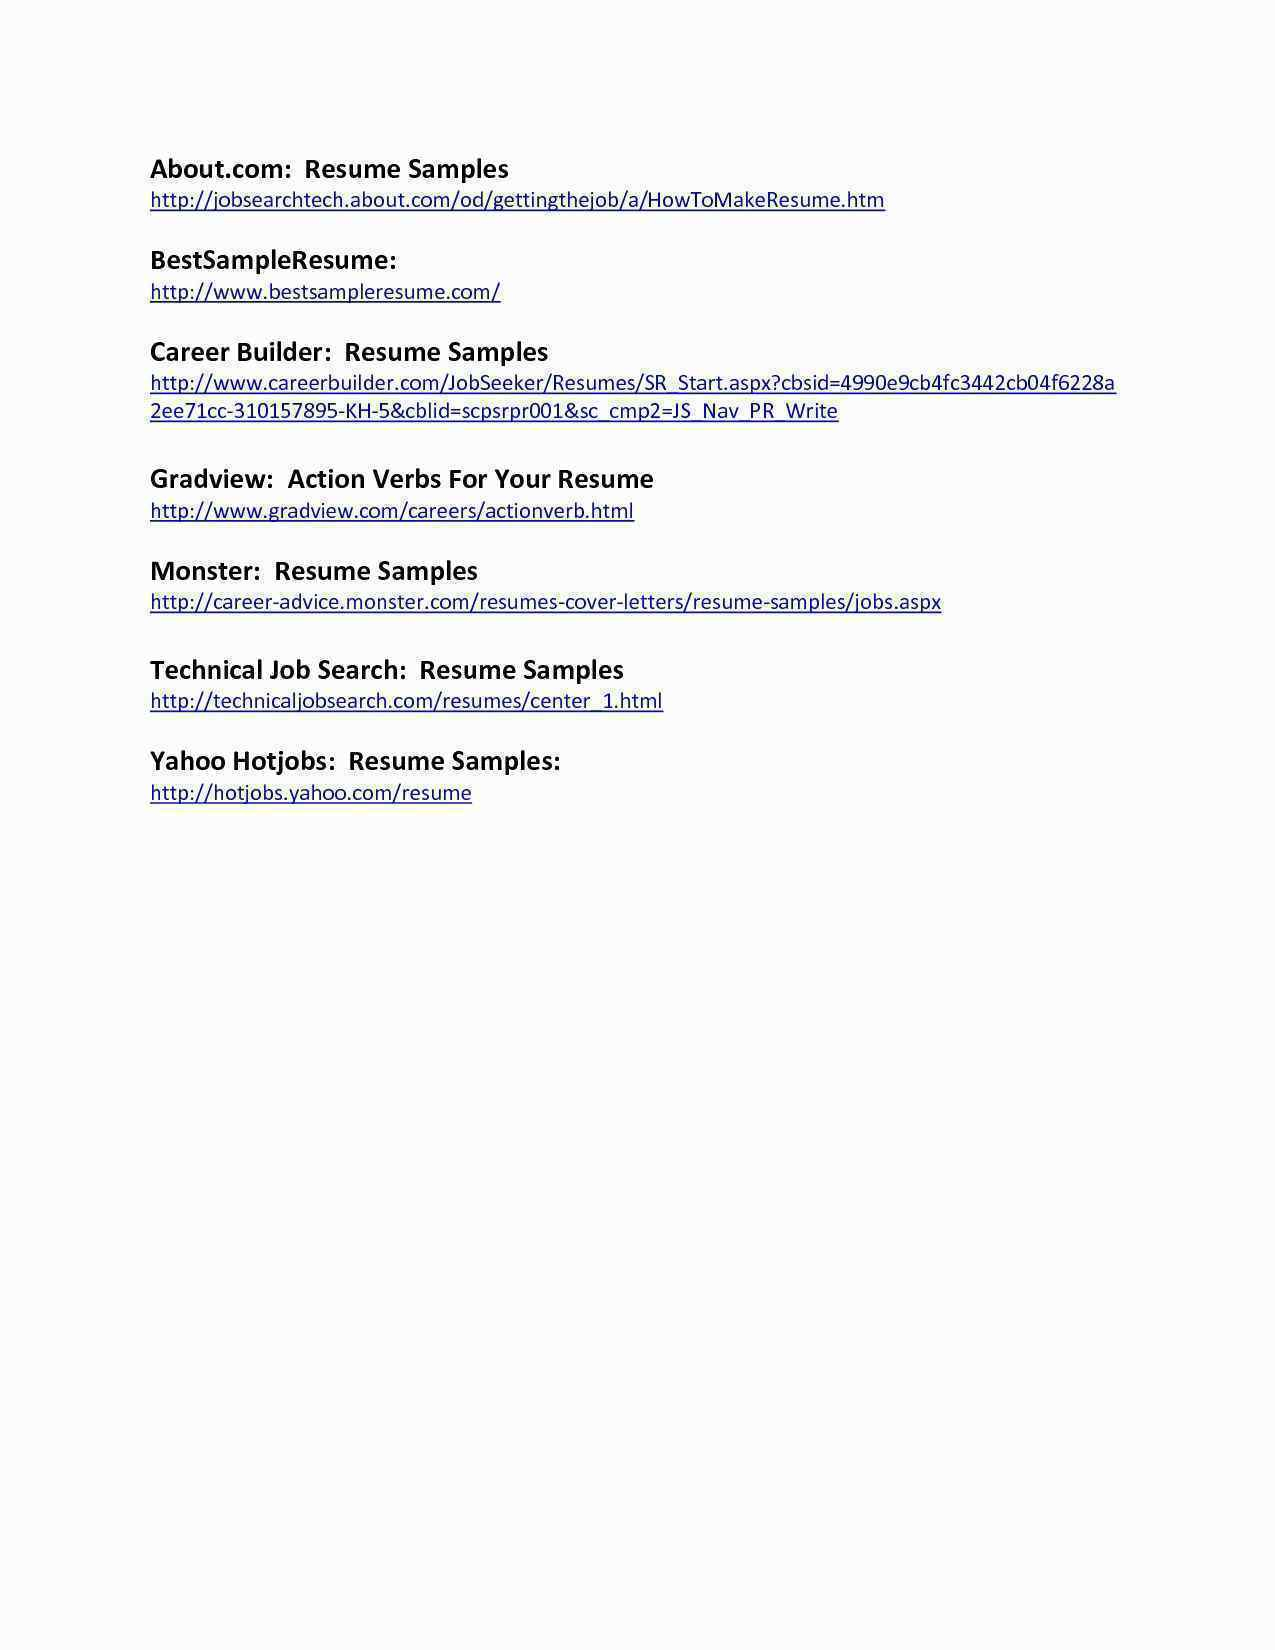 Ramit Sethi Resume Template - Search for Resume 46 Inspirational Career Builder Cool